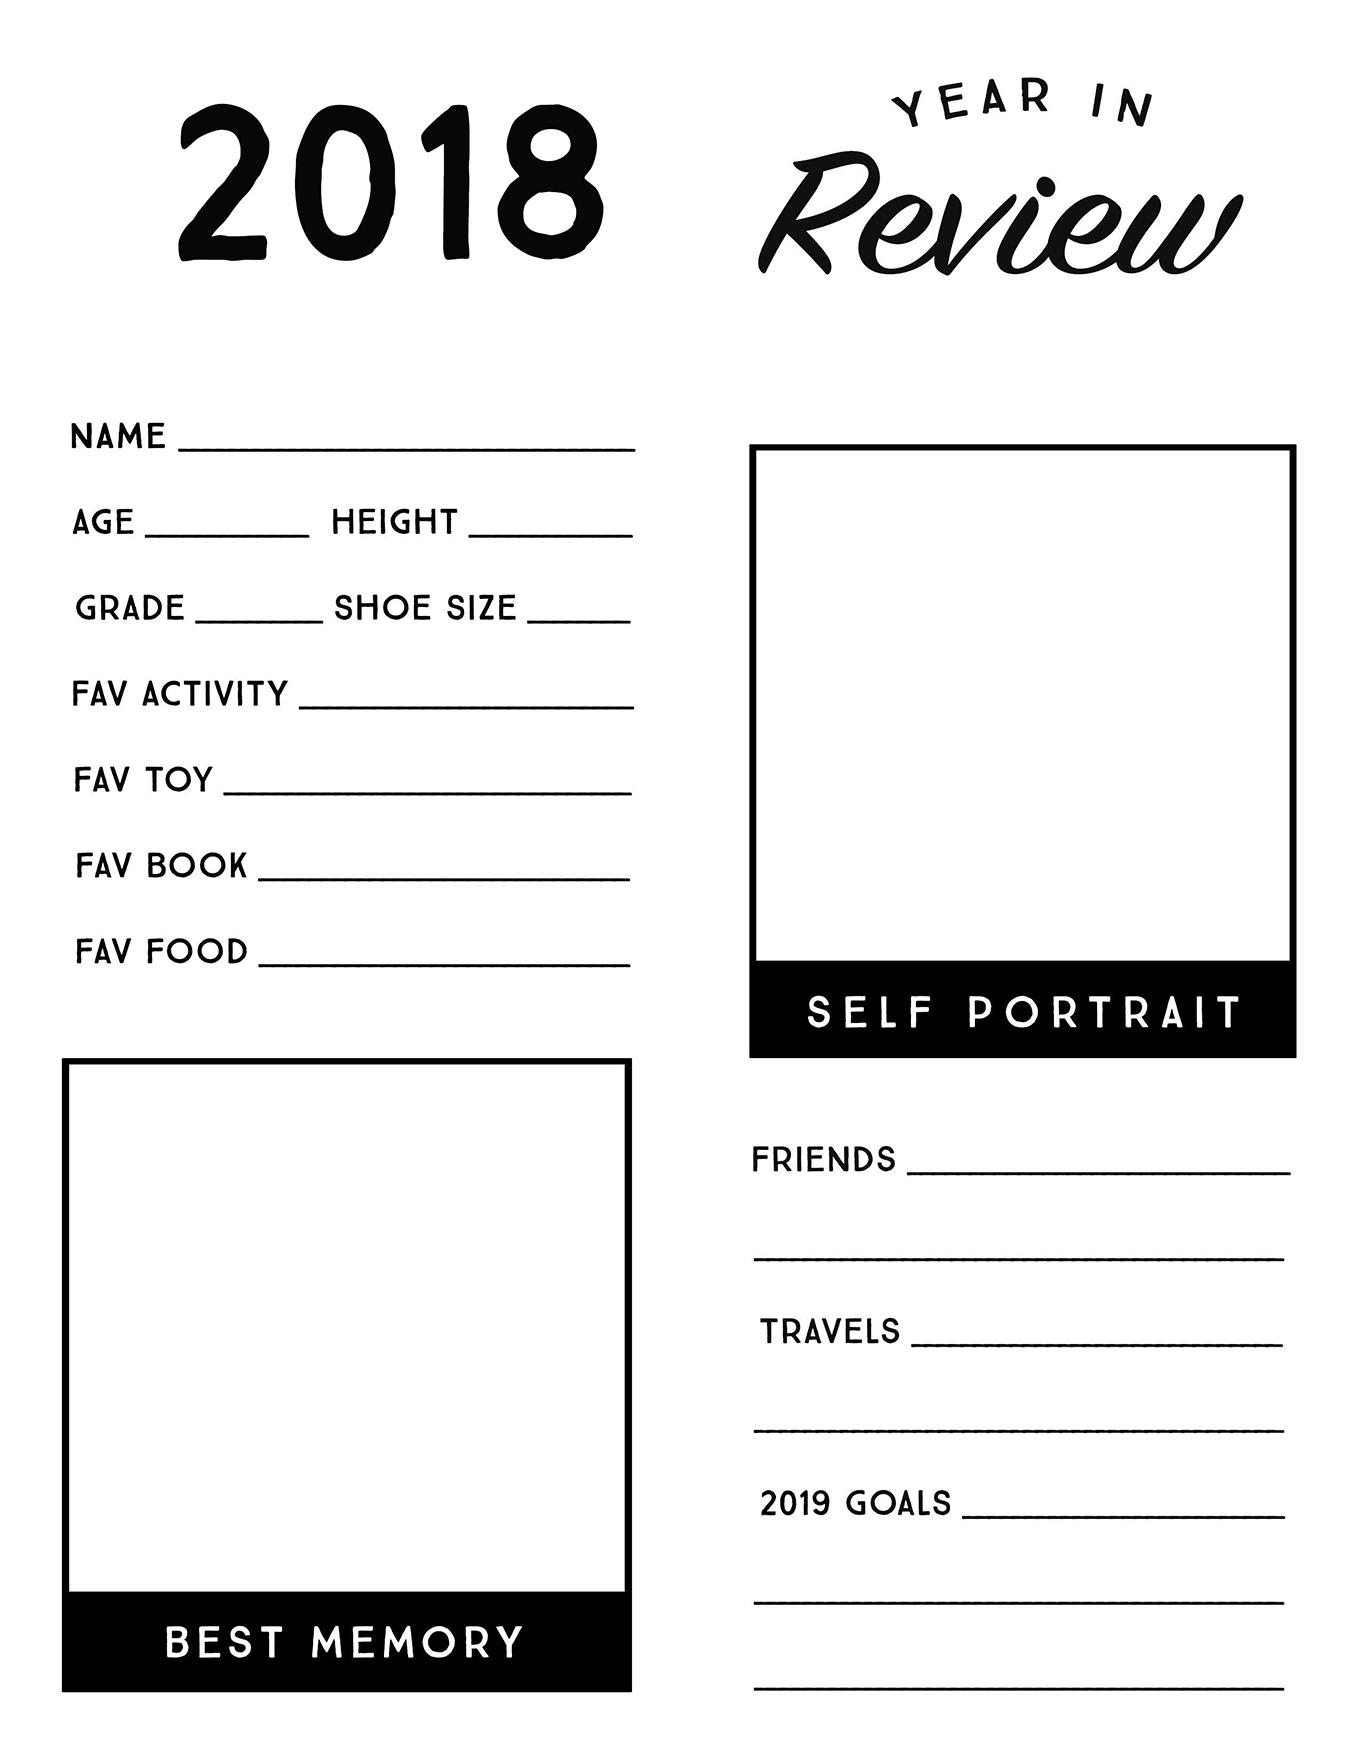 2018 year in review printable for kids